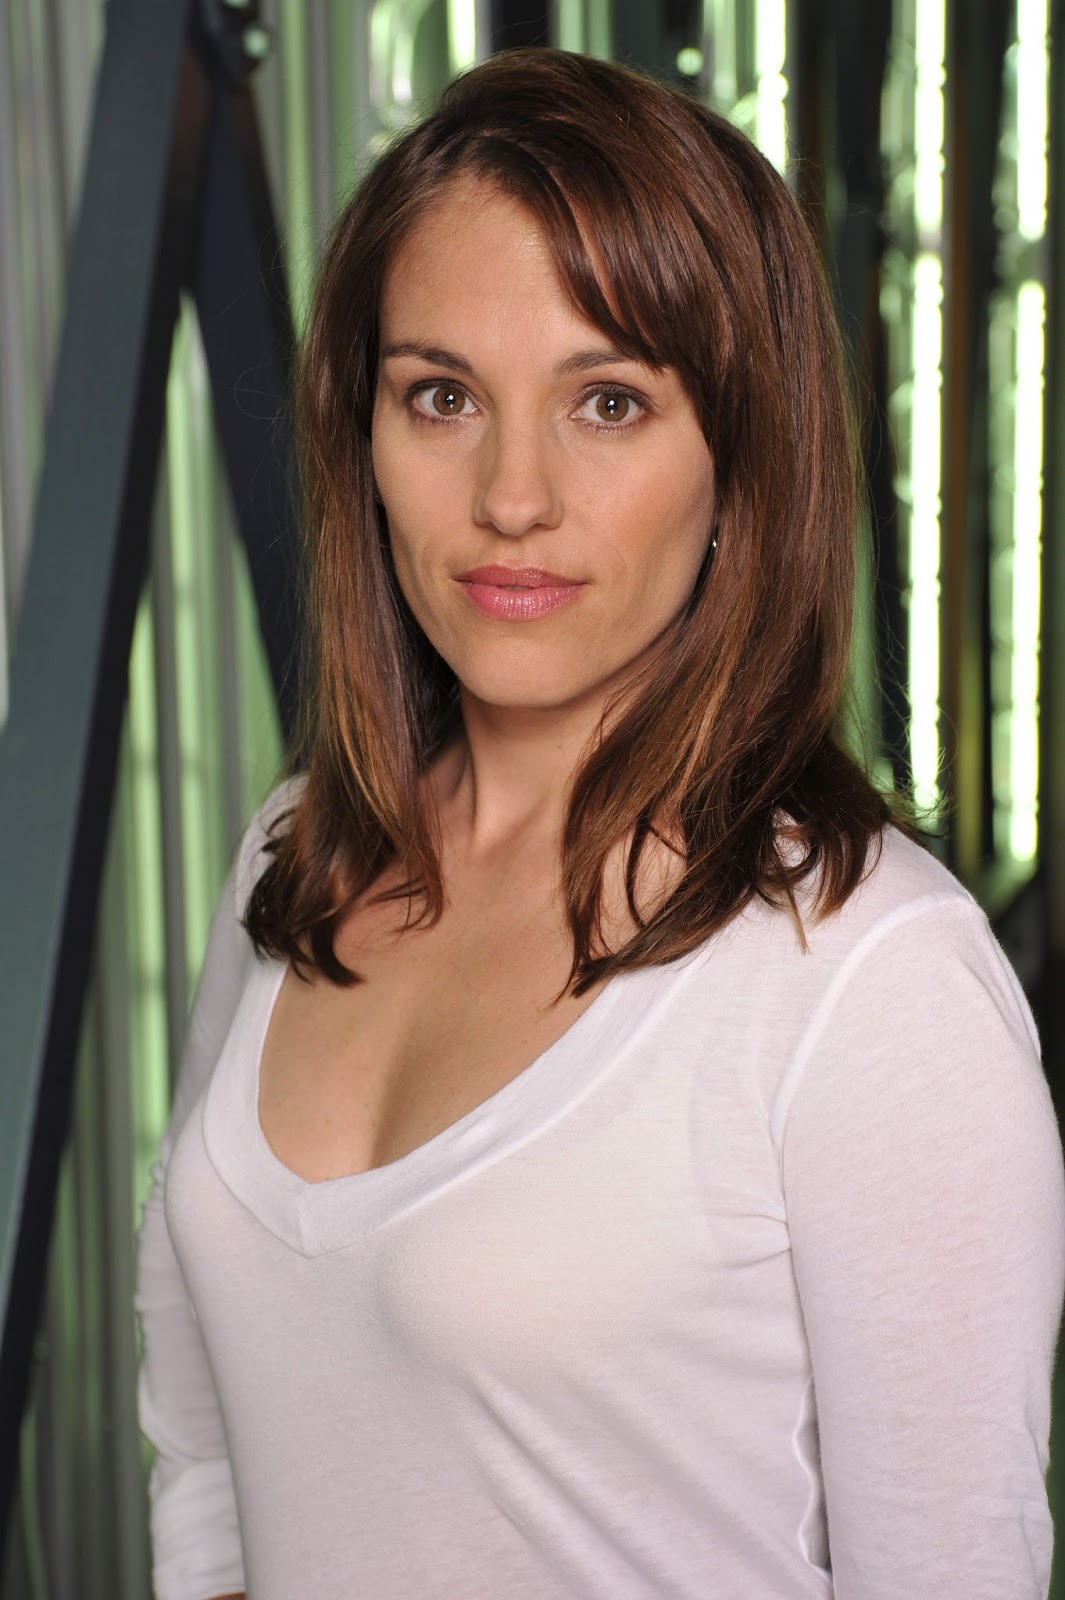 Hot amy jo johnson has one